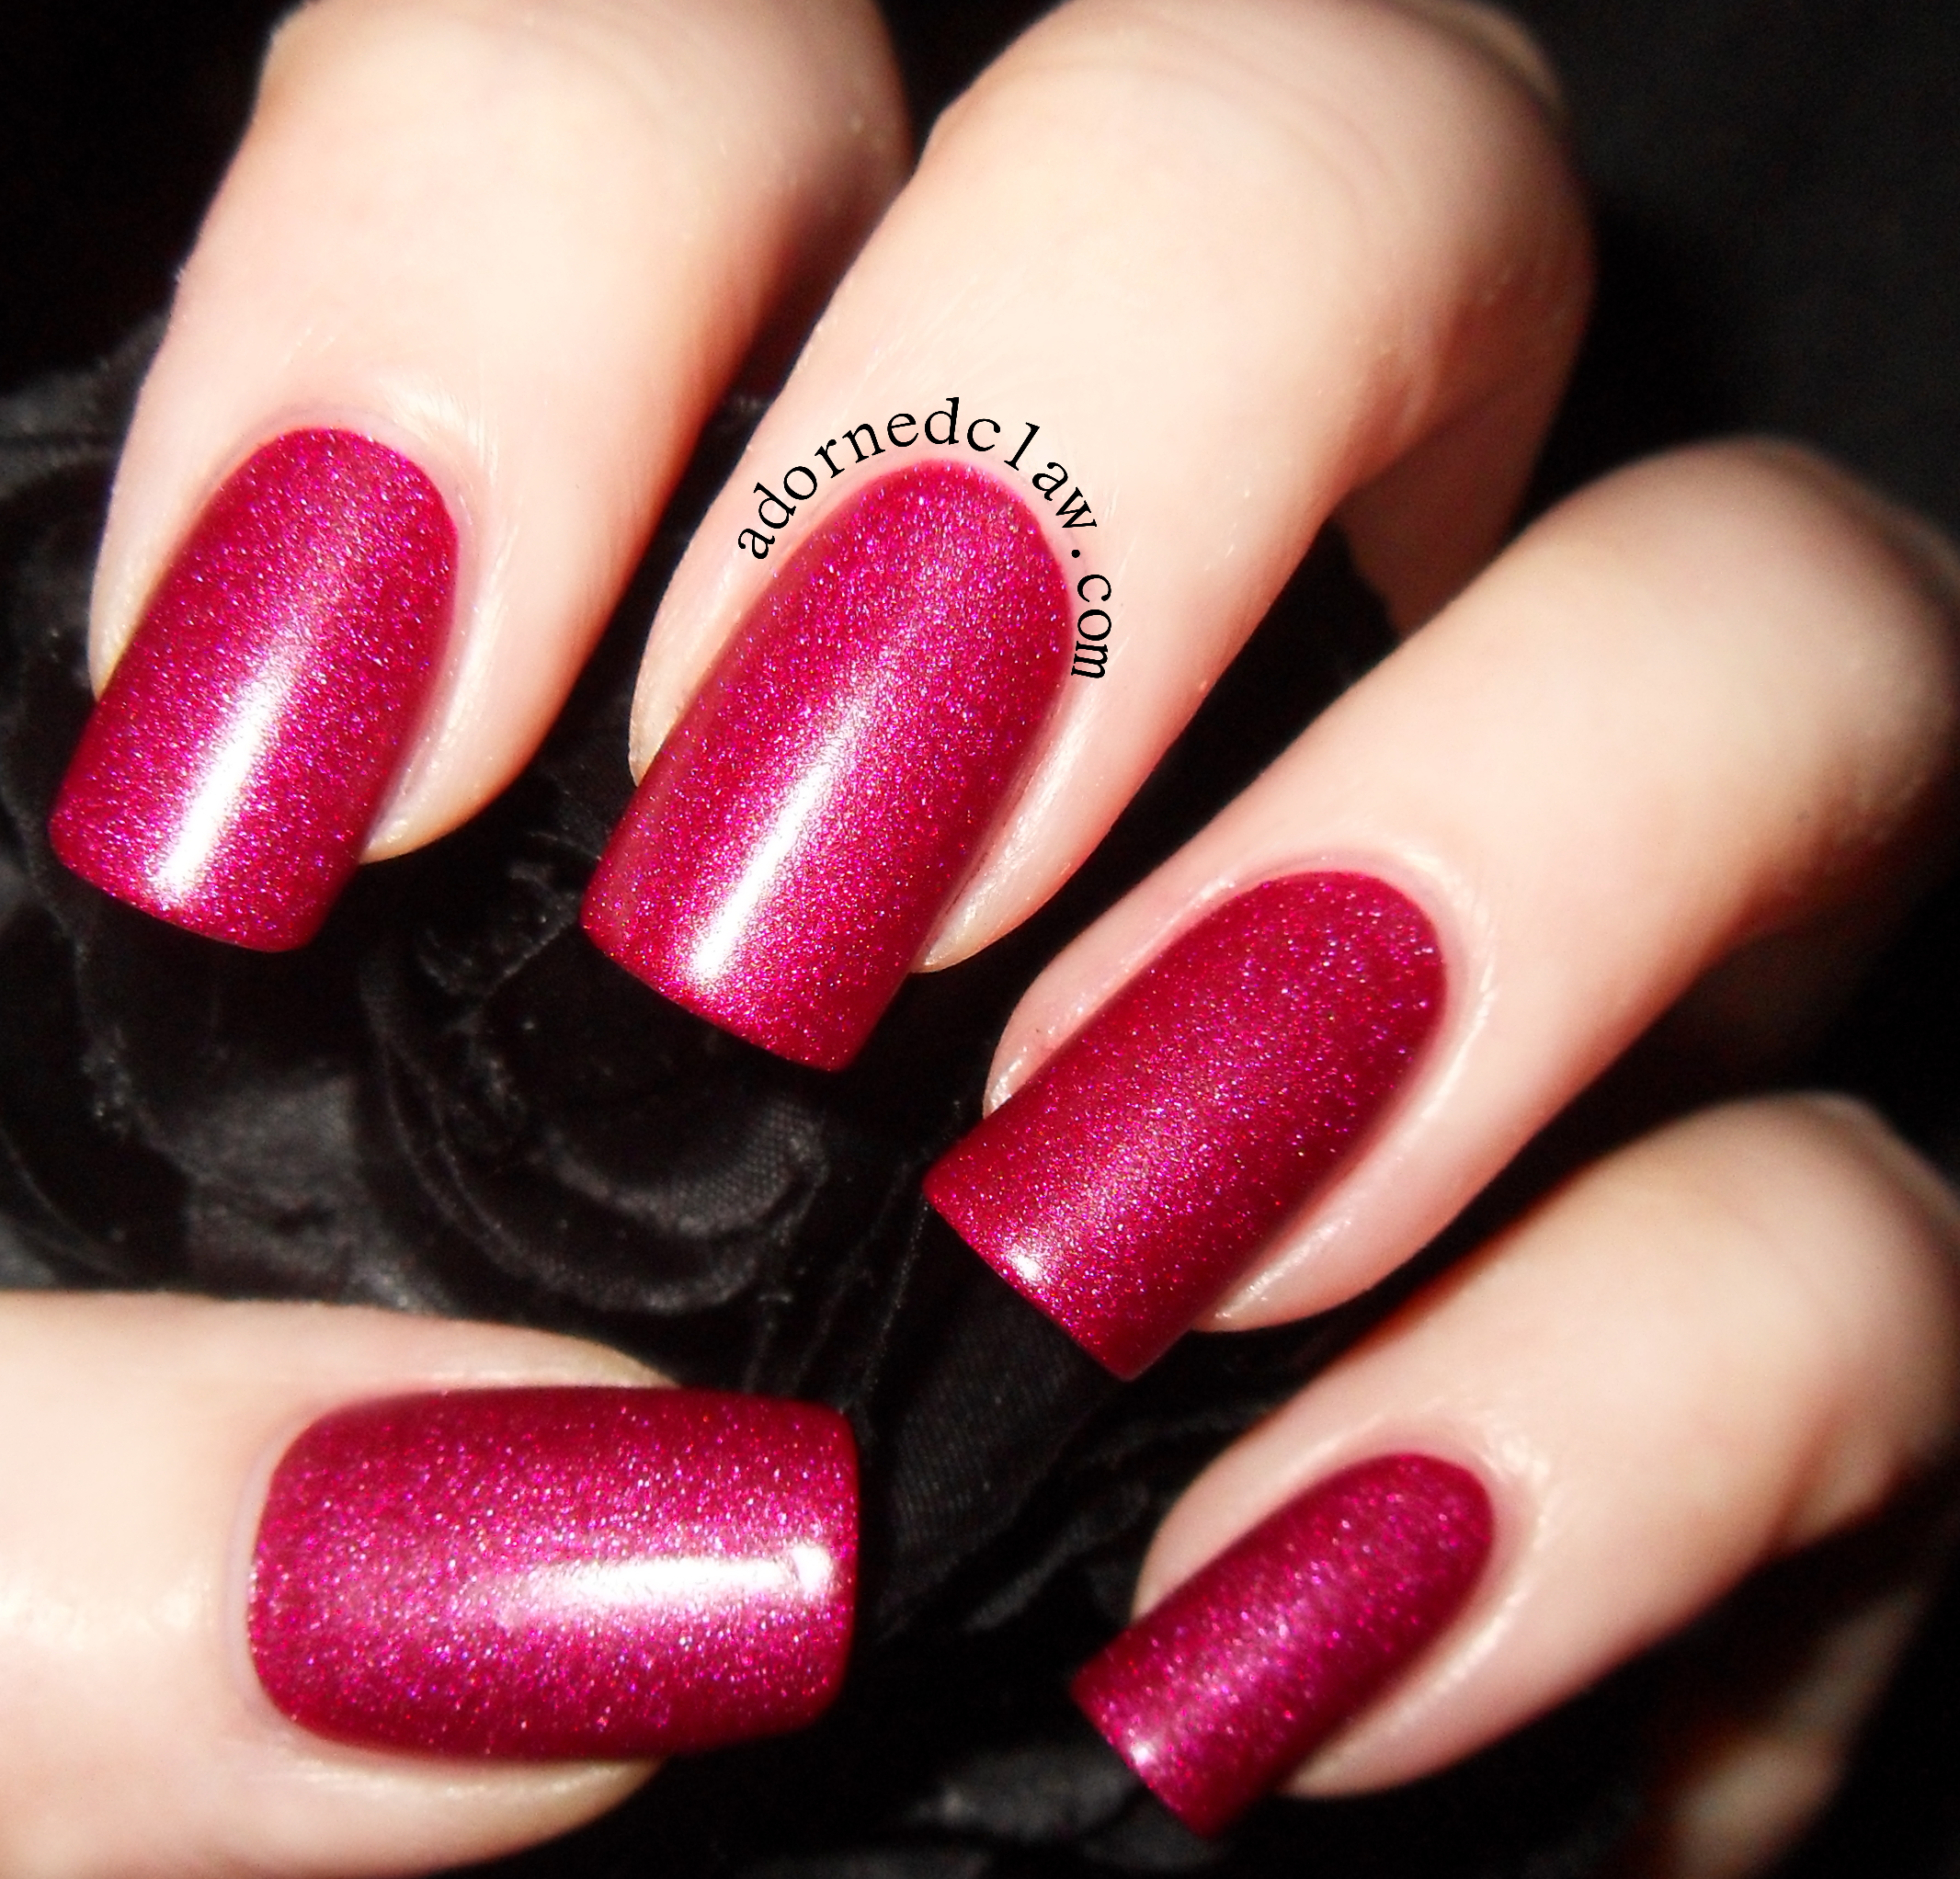 Matte | The Adorned Claw